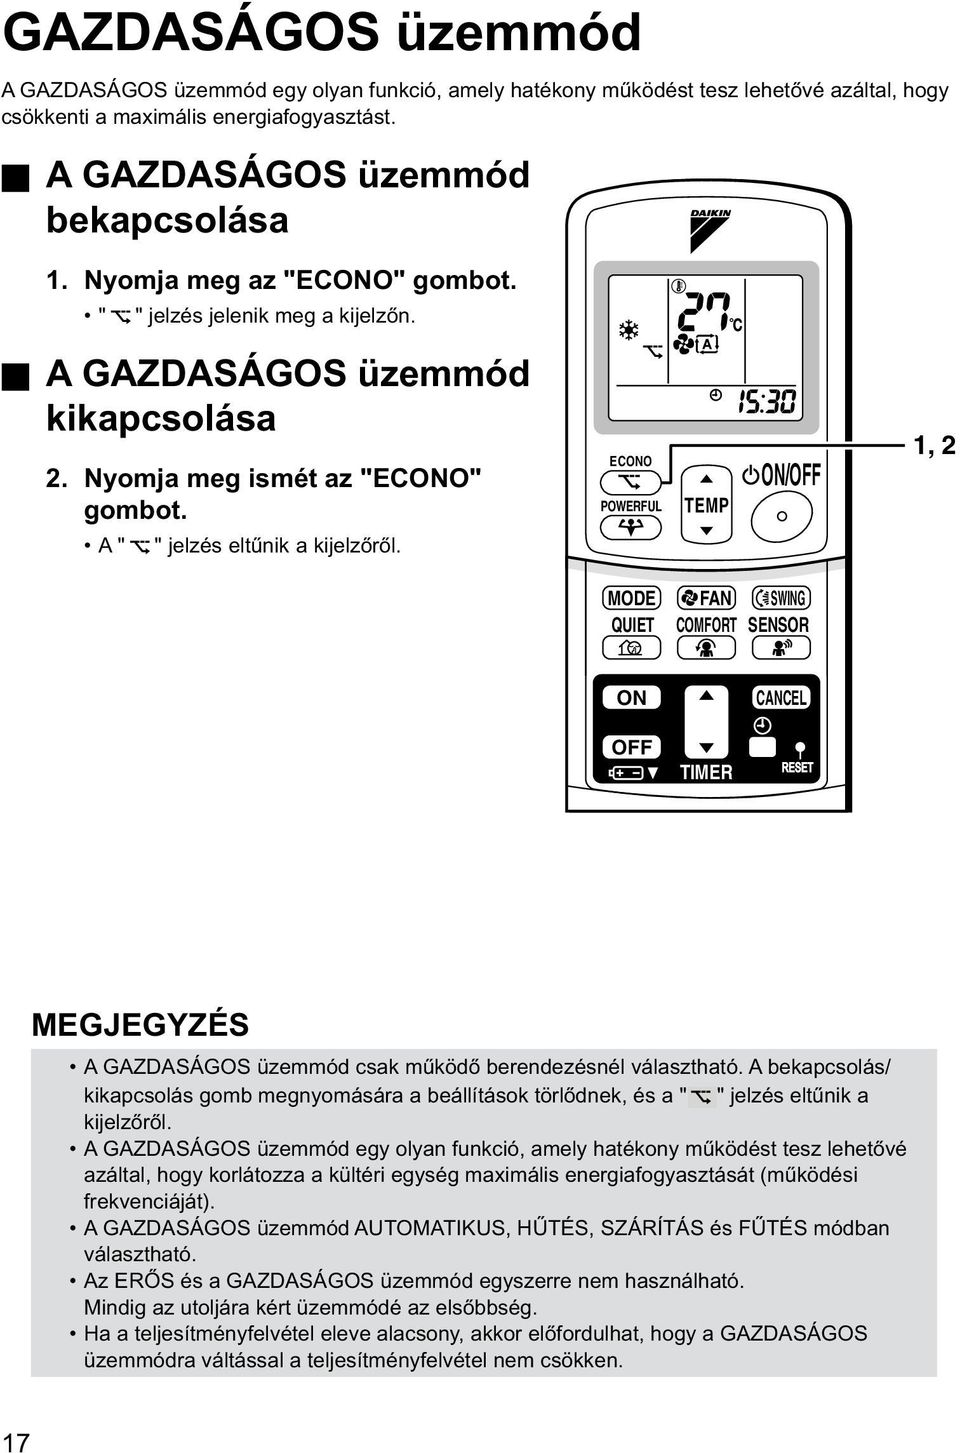 ECONO POWERFUL TEMP ON/OFF 1, 2 MODE FAN SWING QUIET COMFORT SENSOR ON CANCEL OFF TIMER MEGJEGYZÉS A GAZDASÁGOS üzemmód csak működő berendezésnél választható.